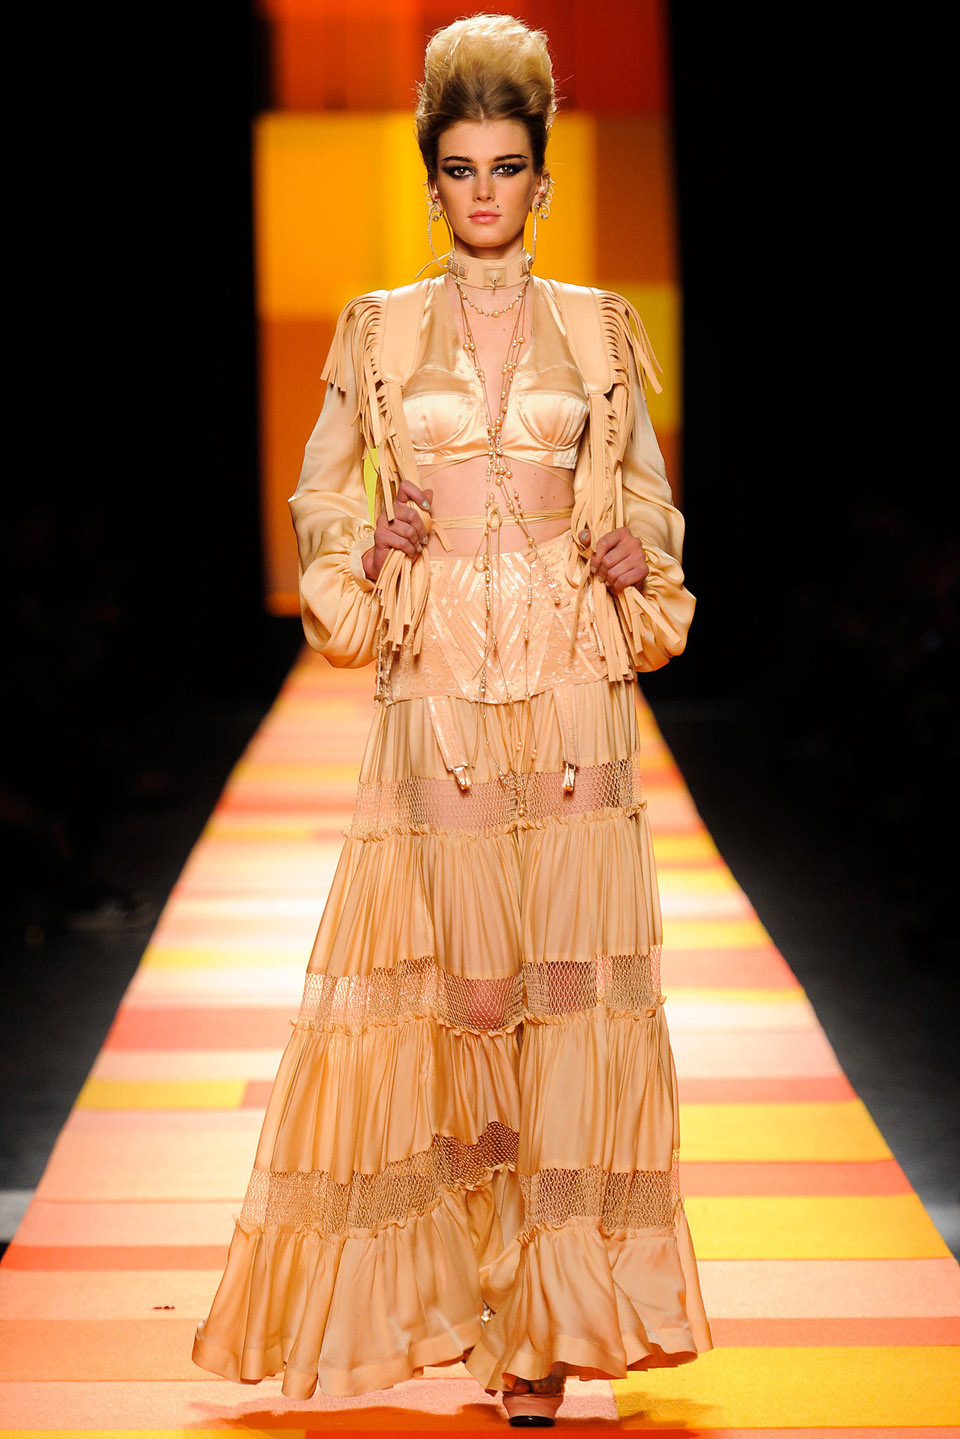 Jean Paul Gaultier Spring - Summer 2013, Haute Couture collection.25